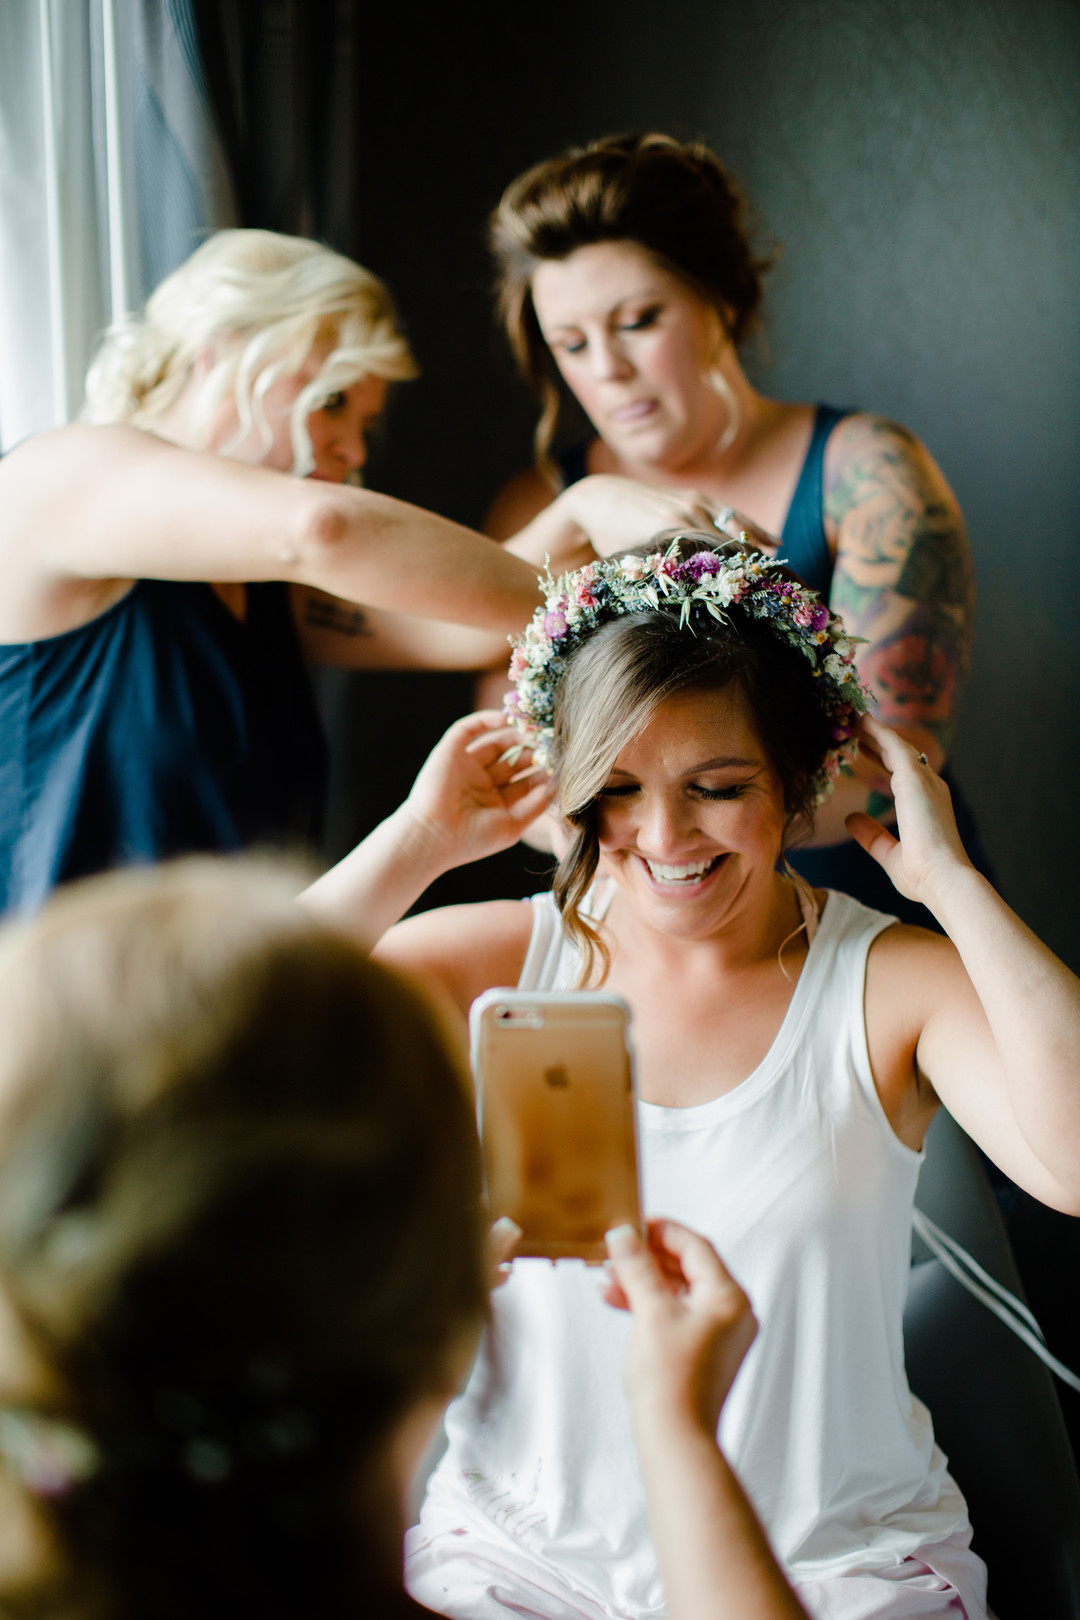 Bride getting ready: Rustic country wedding in Minooka, IL captured by Katie Brsan Photography. Visit CHItheeWED.com for more wedding inspiration!